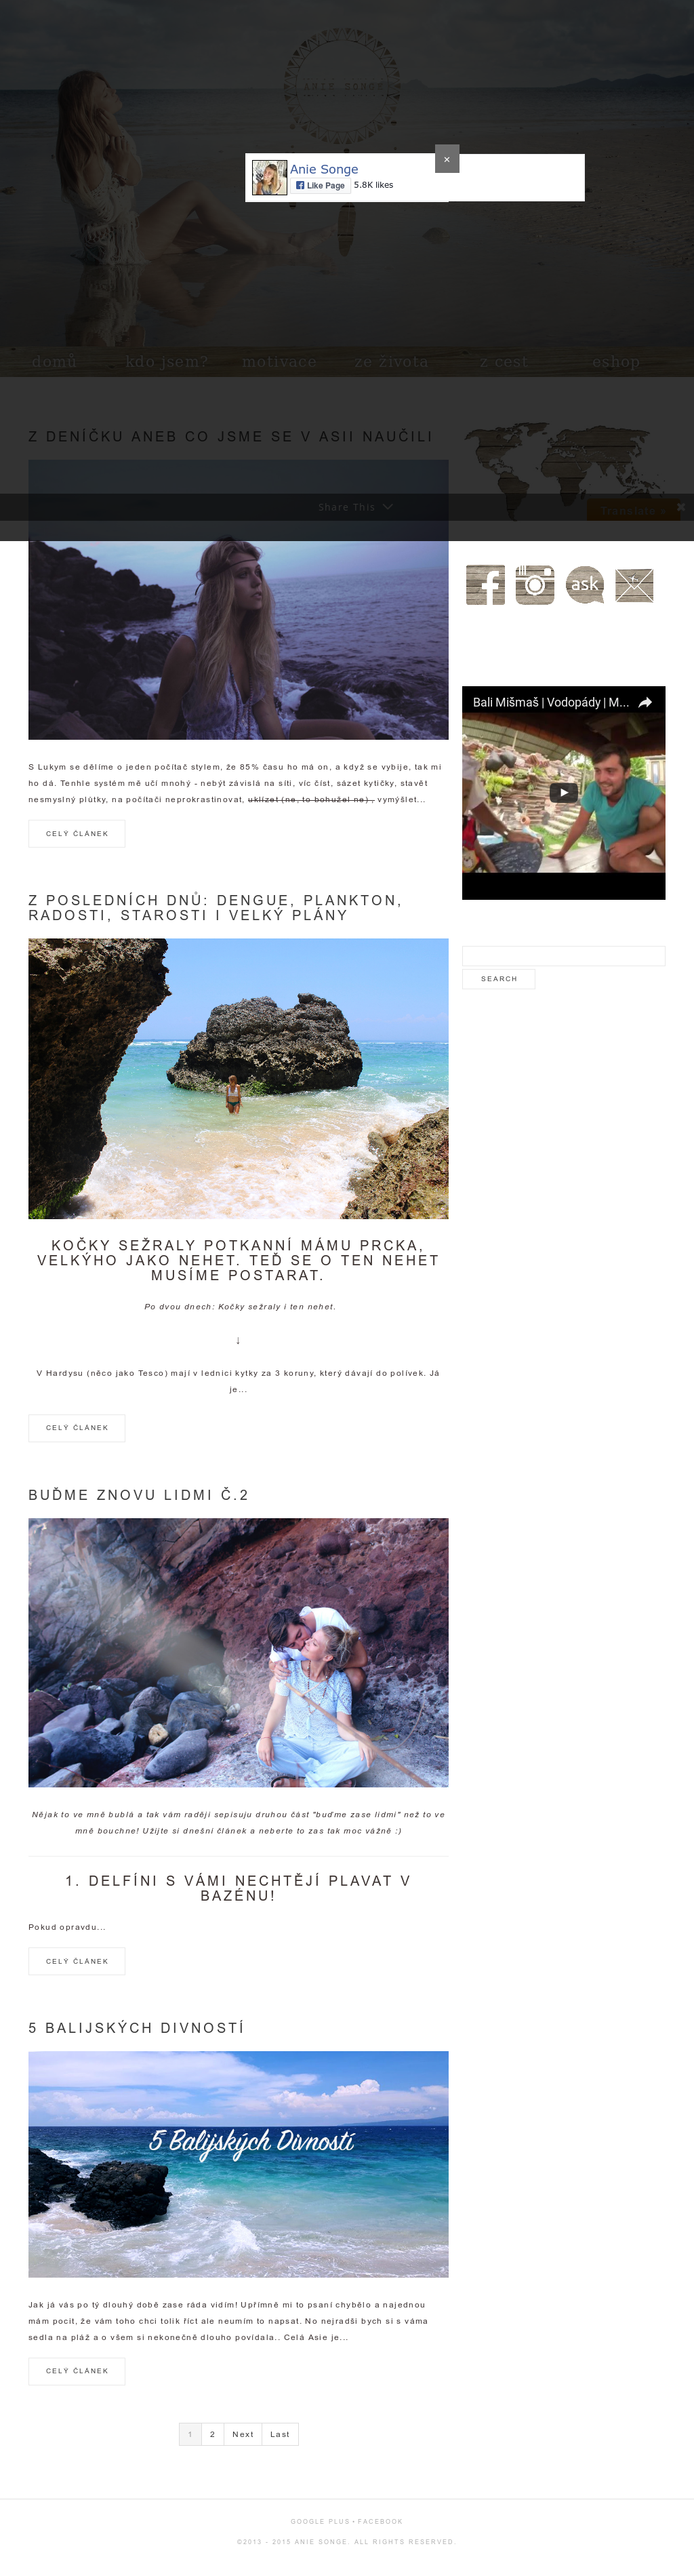 Aniesonge anie songe fashion blog competitors, revenue and employees